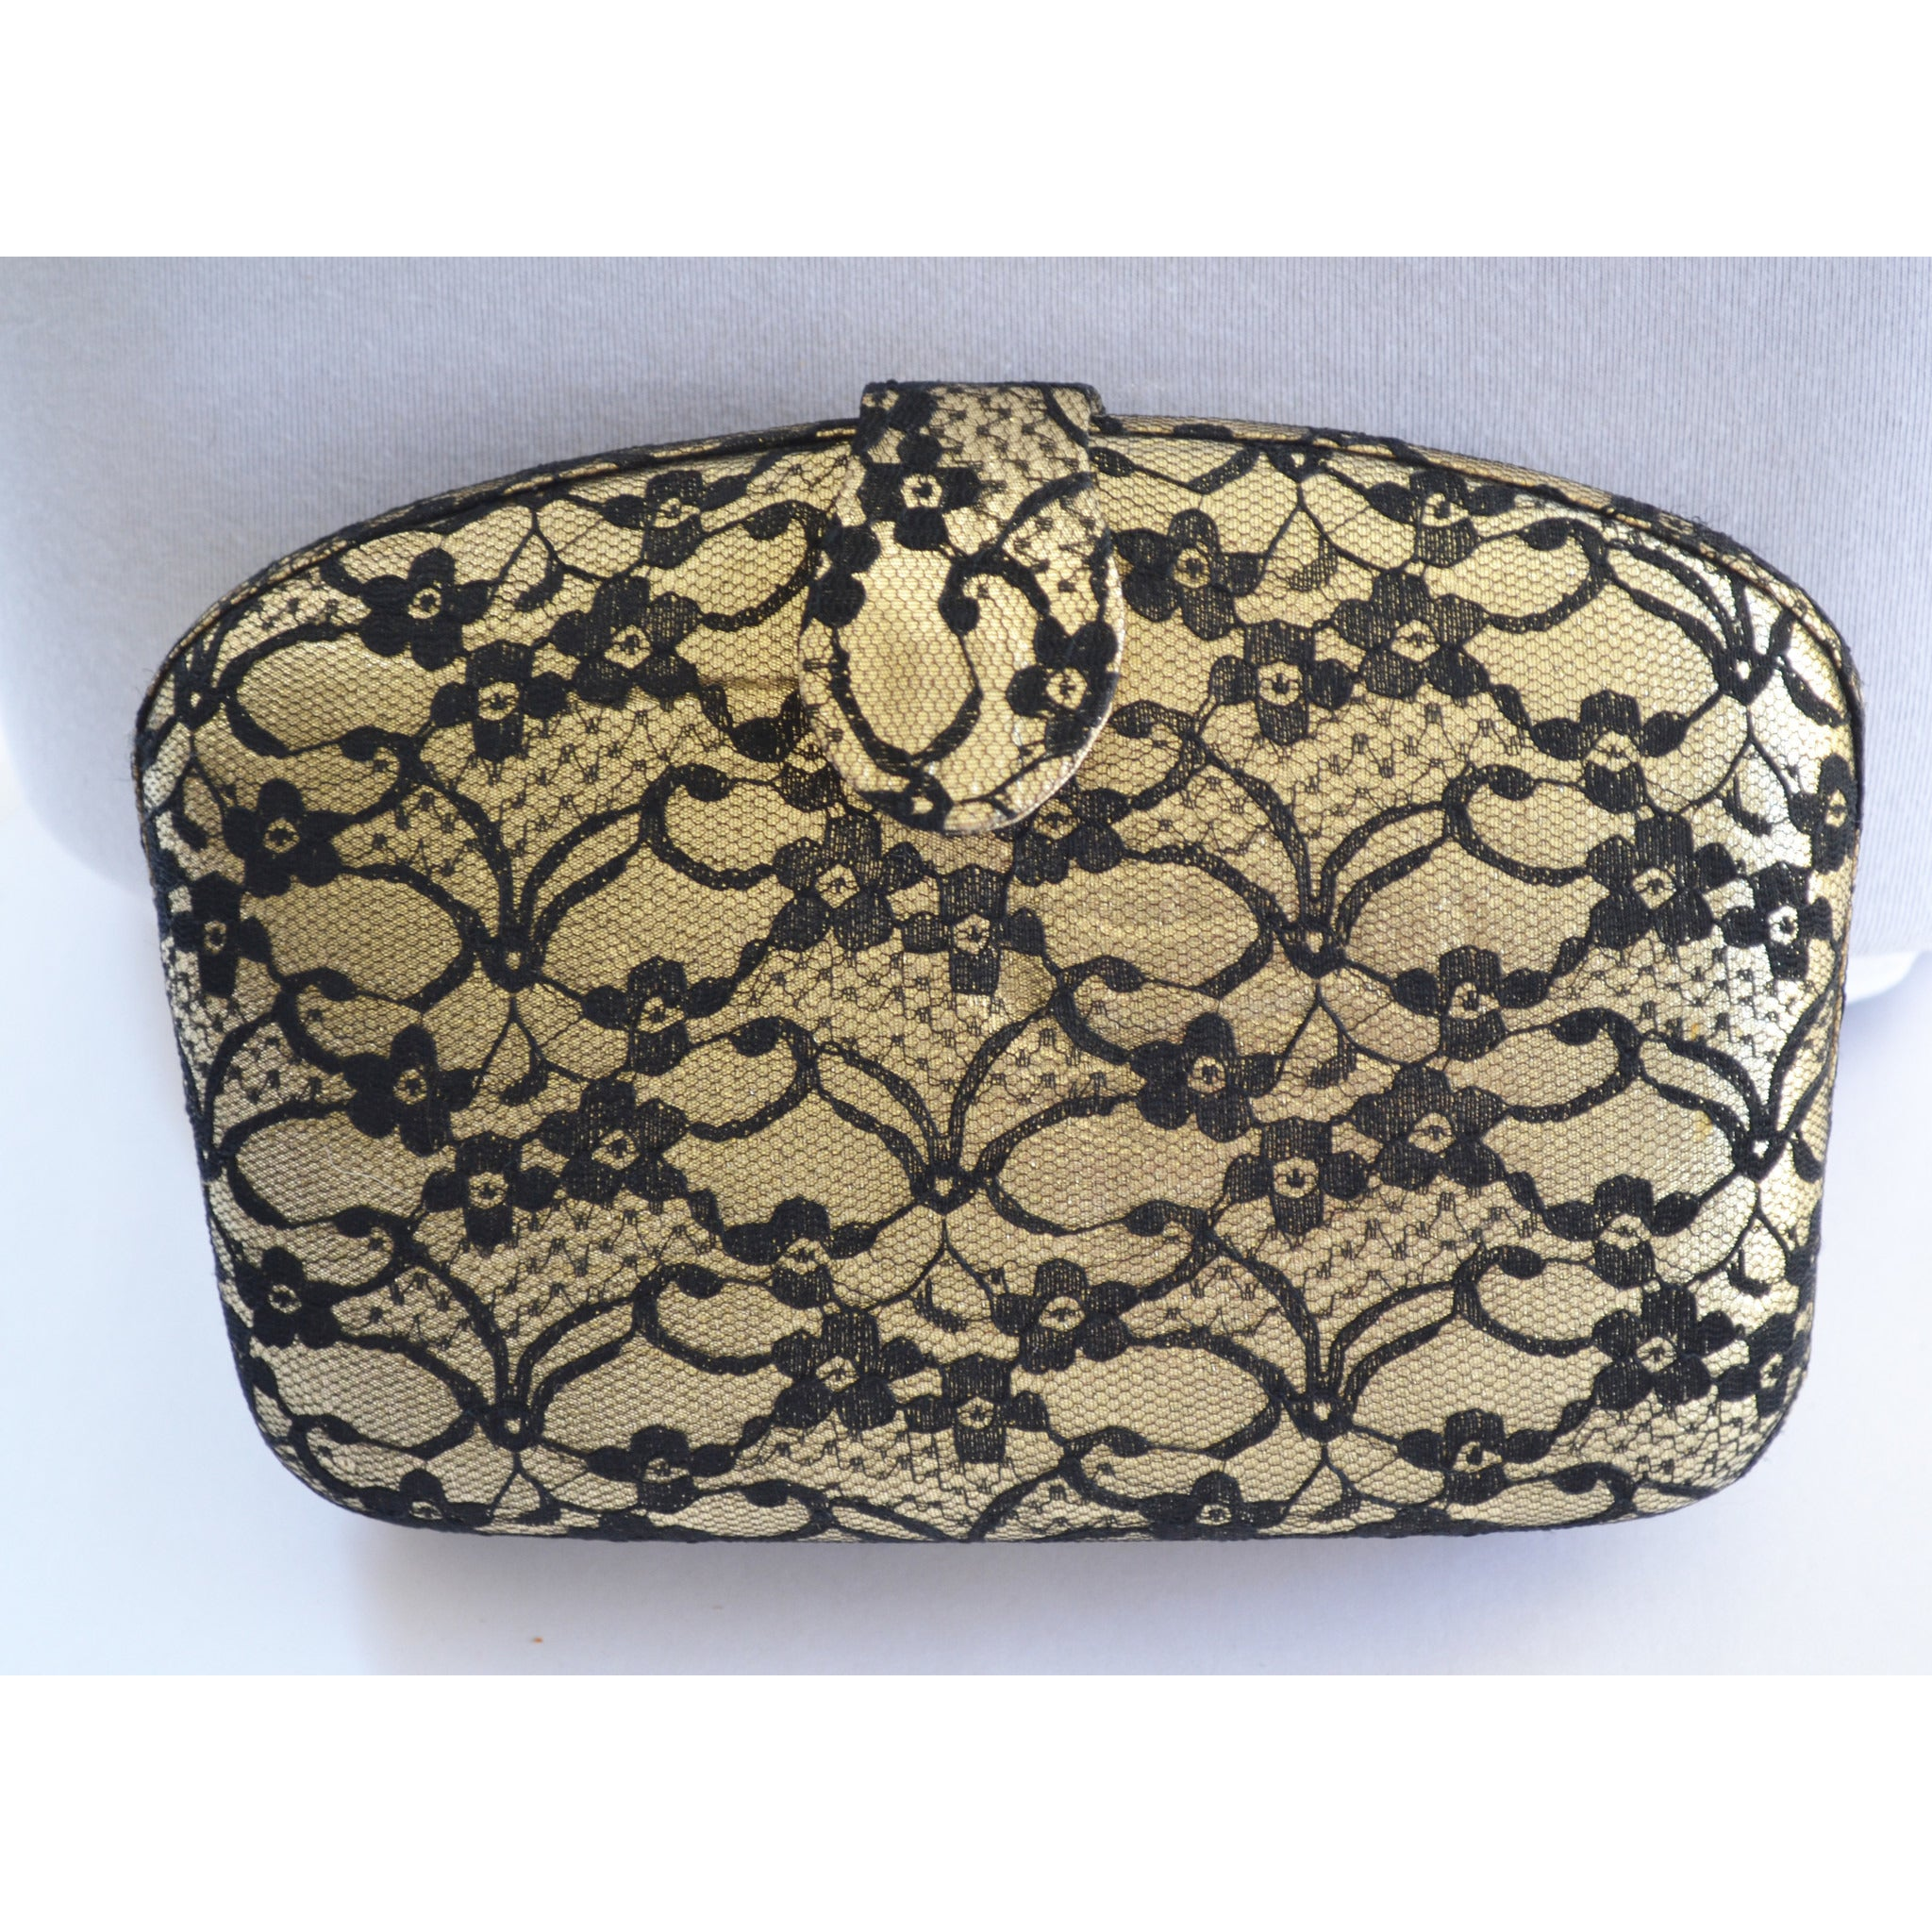 Vintage Gold & Lace Clutch Purse By Whiting & Davis